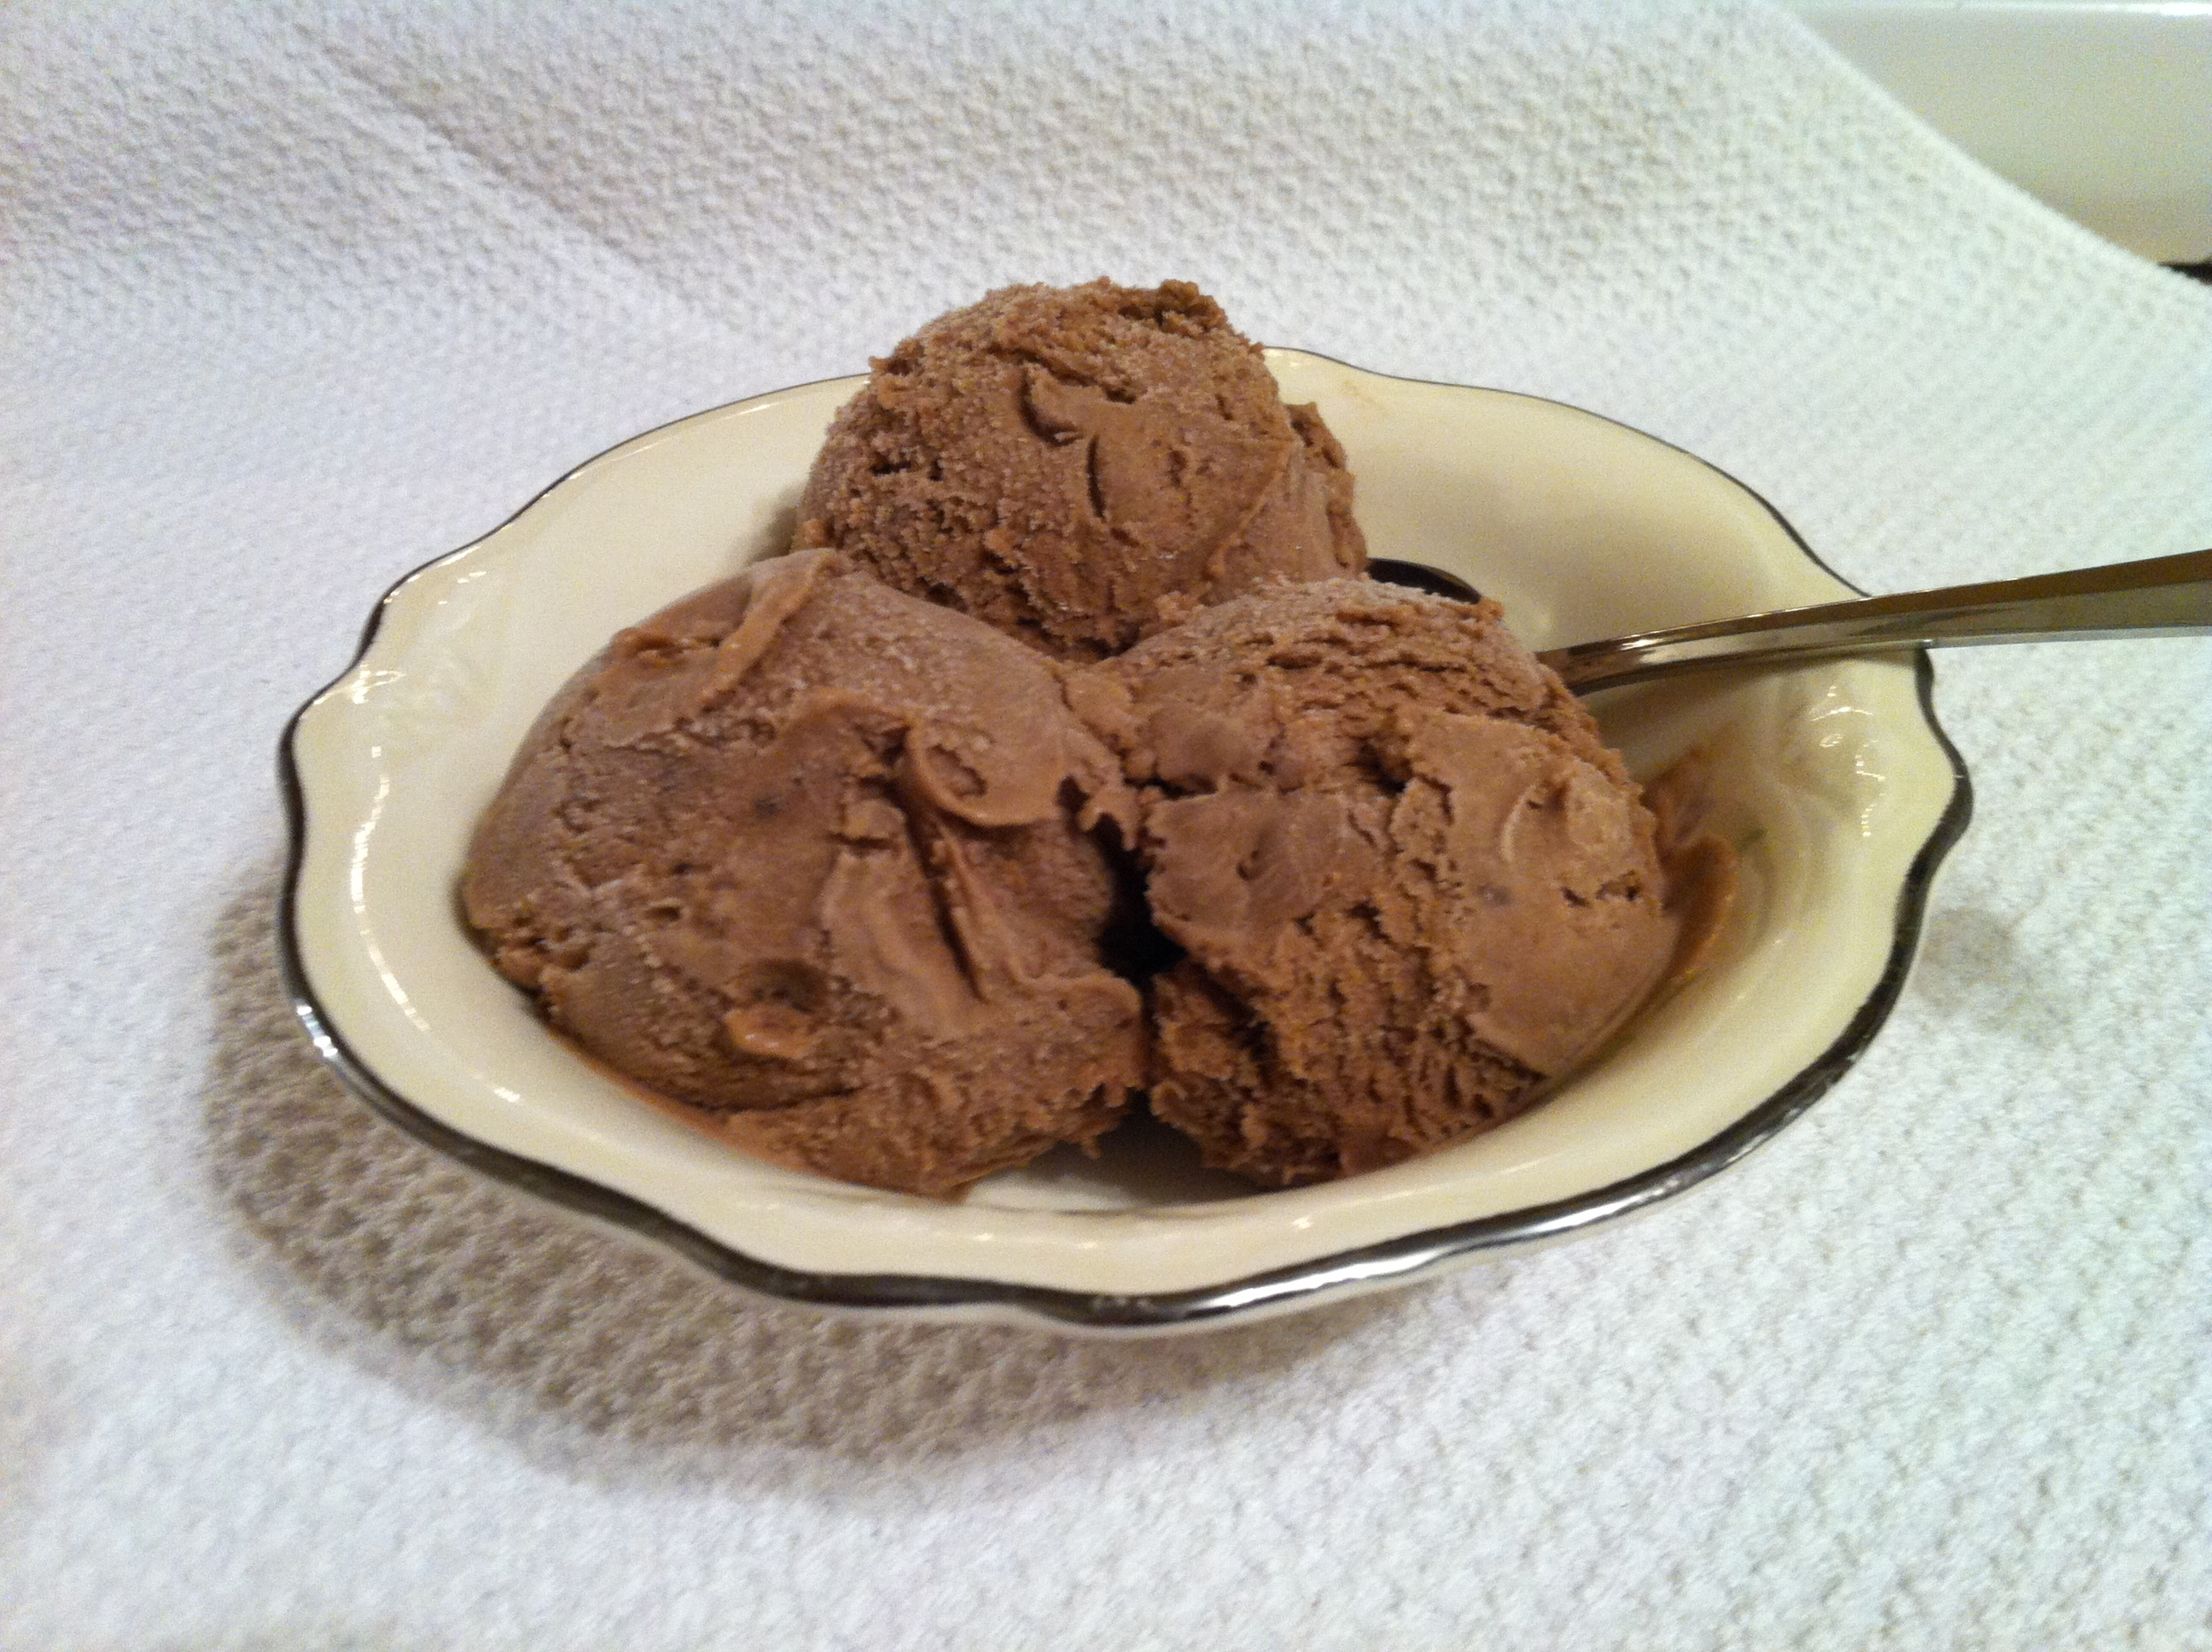 homemade chocolate pudding ice cream recipe